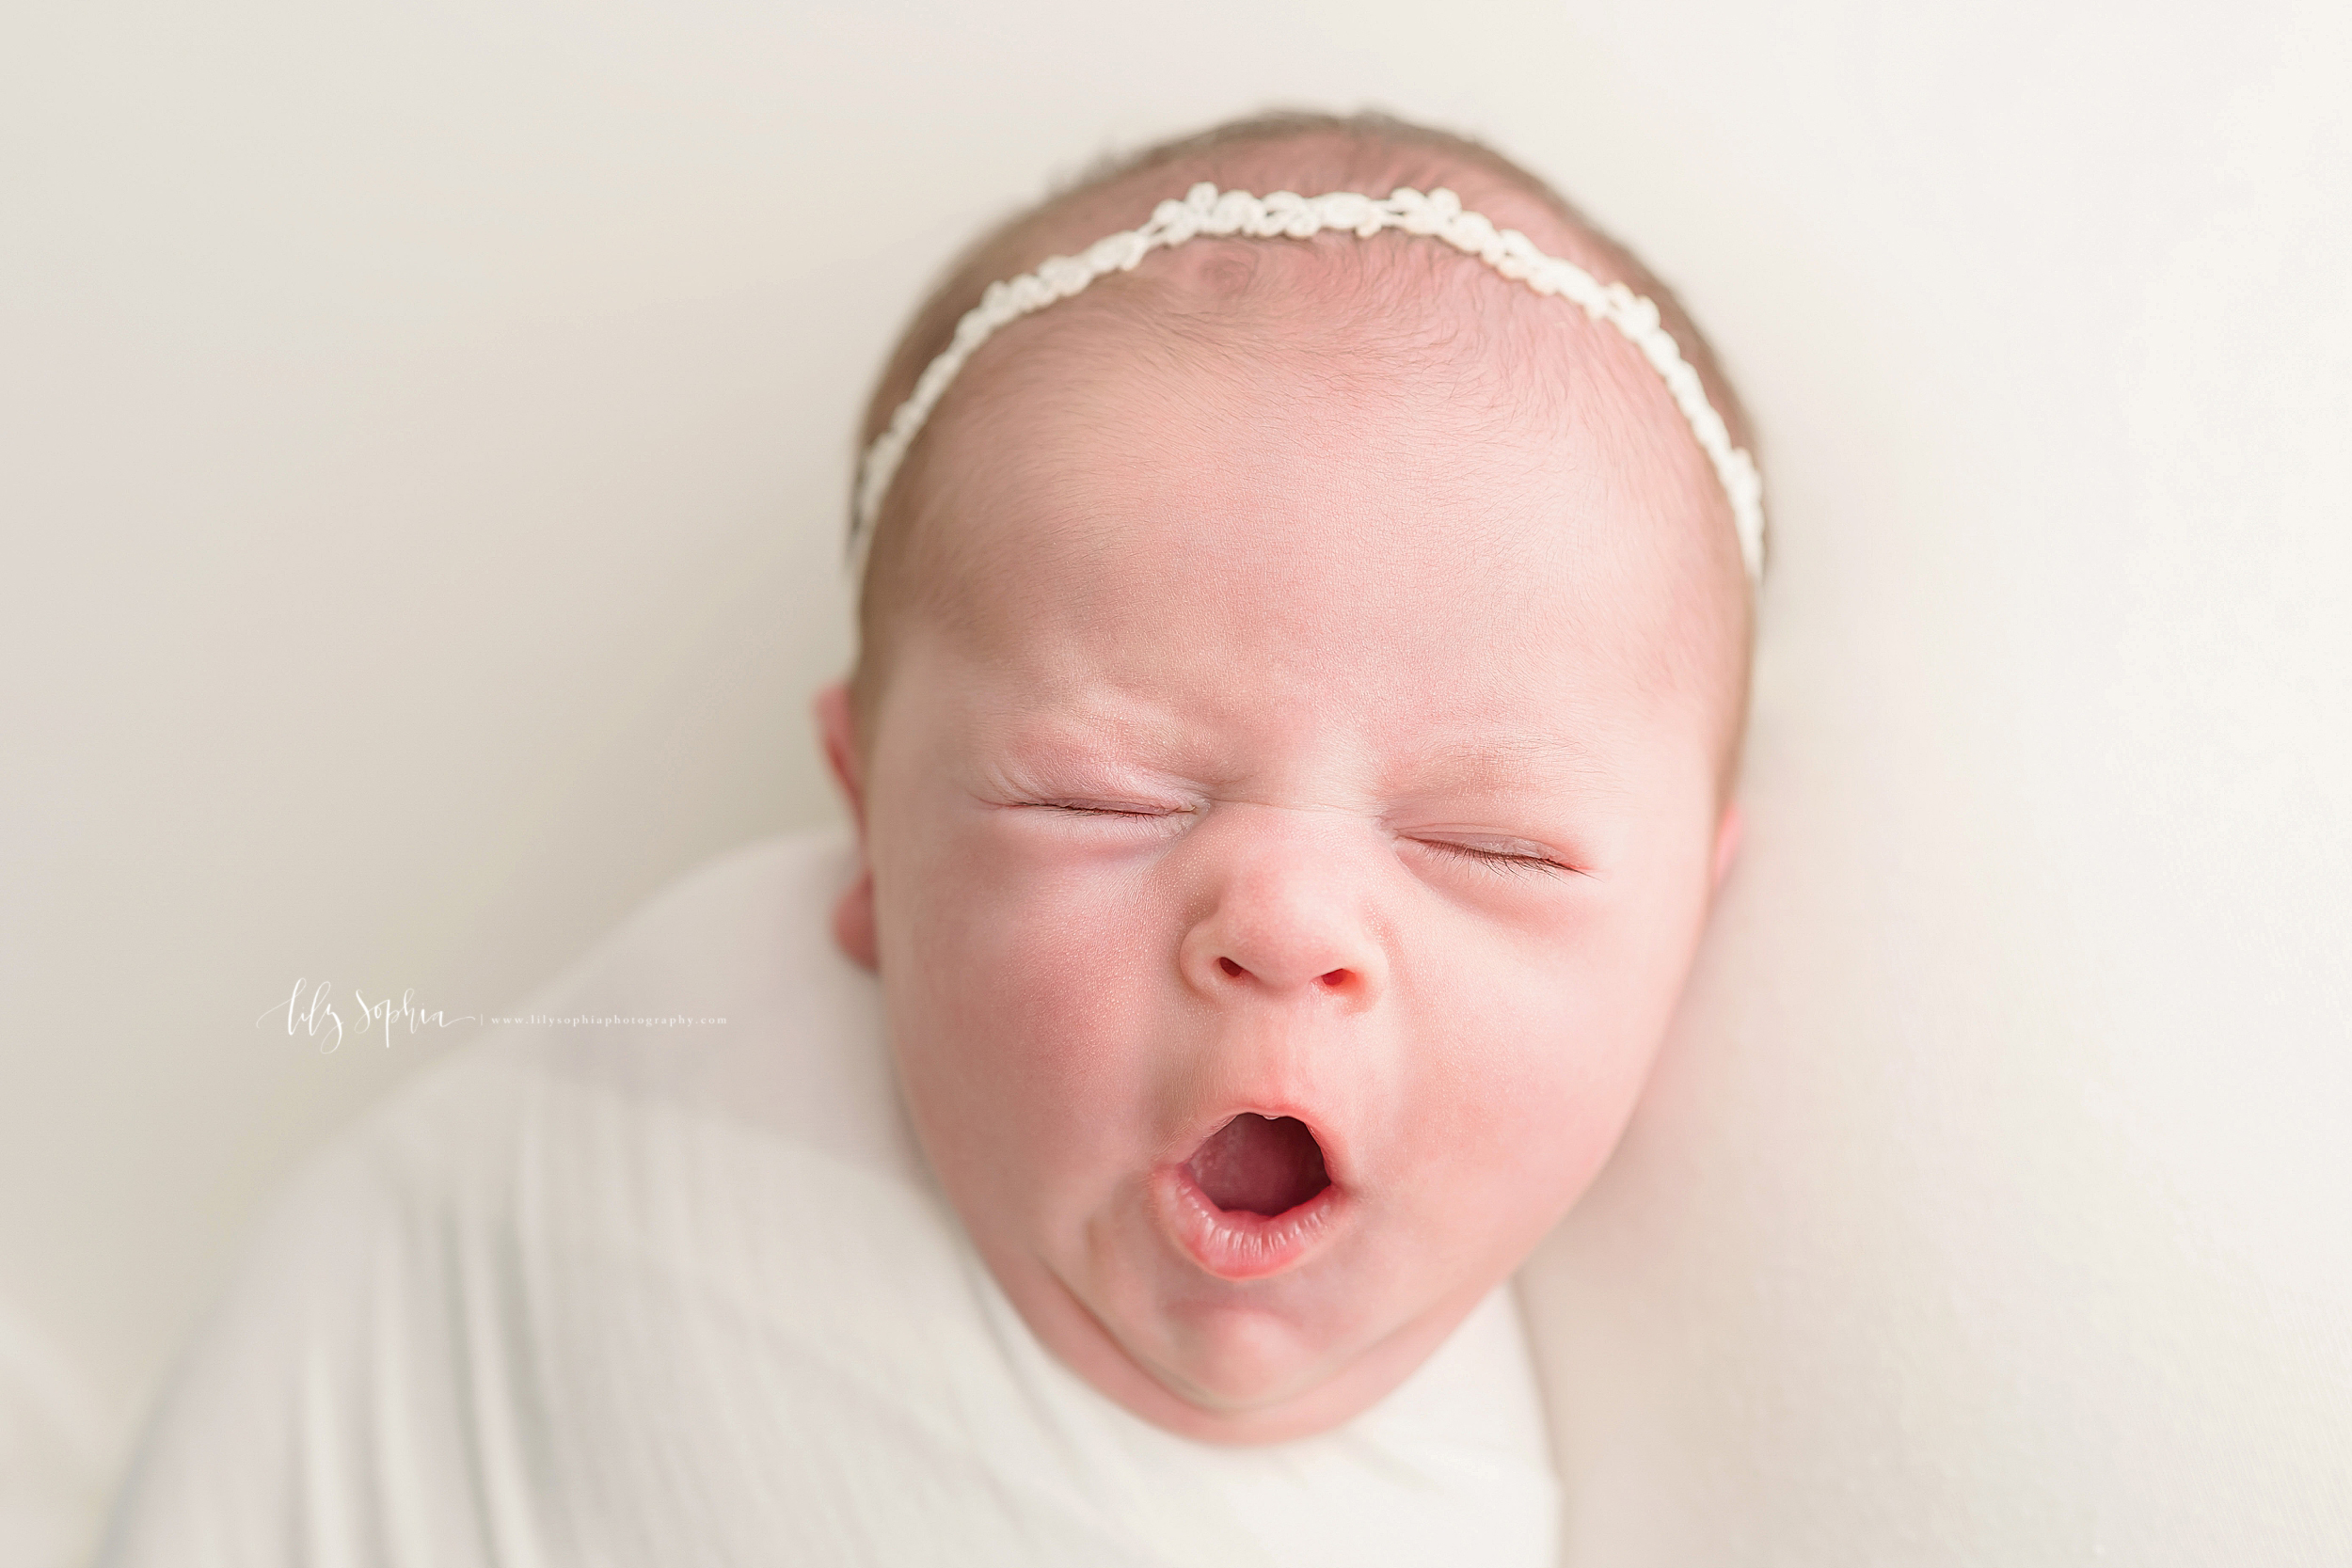 Photo of a newborn baby girl yawning for the camera in an Atlanta studio in natural light as she wears a crocheted head band and is swaddled to her neck in a blanket.